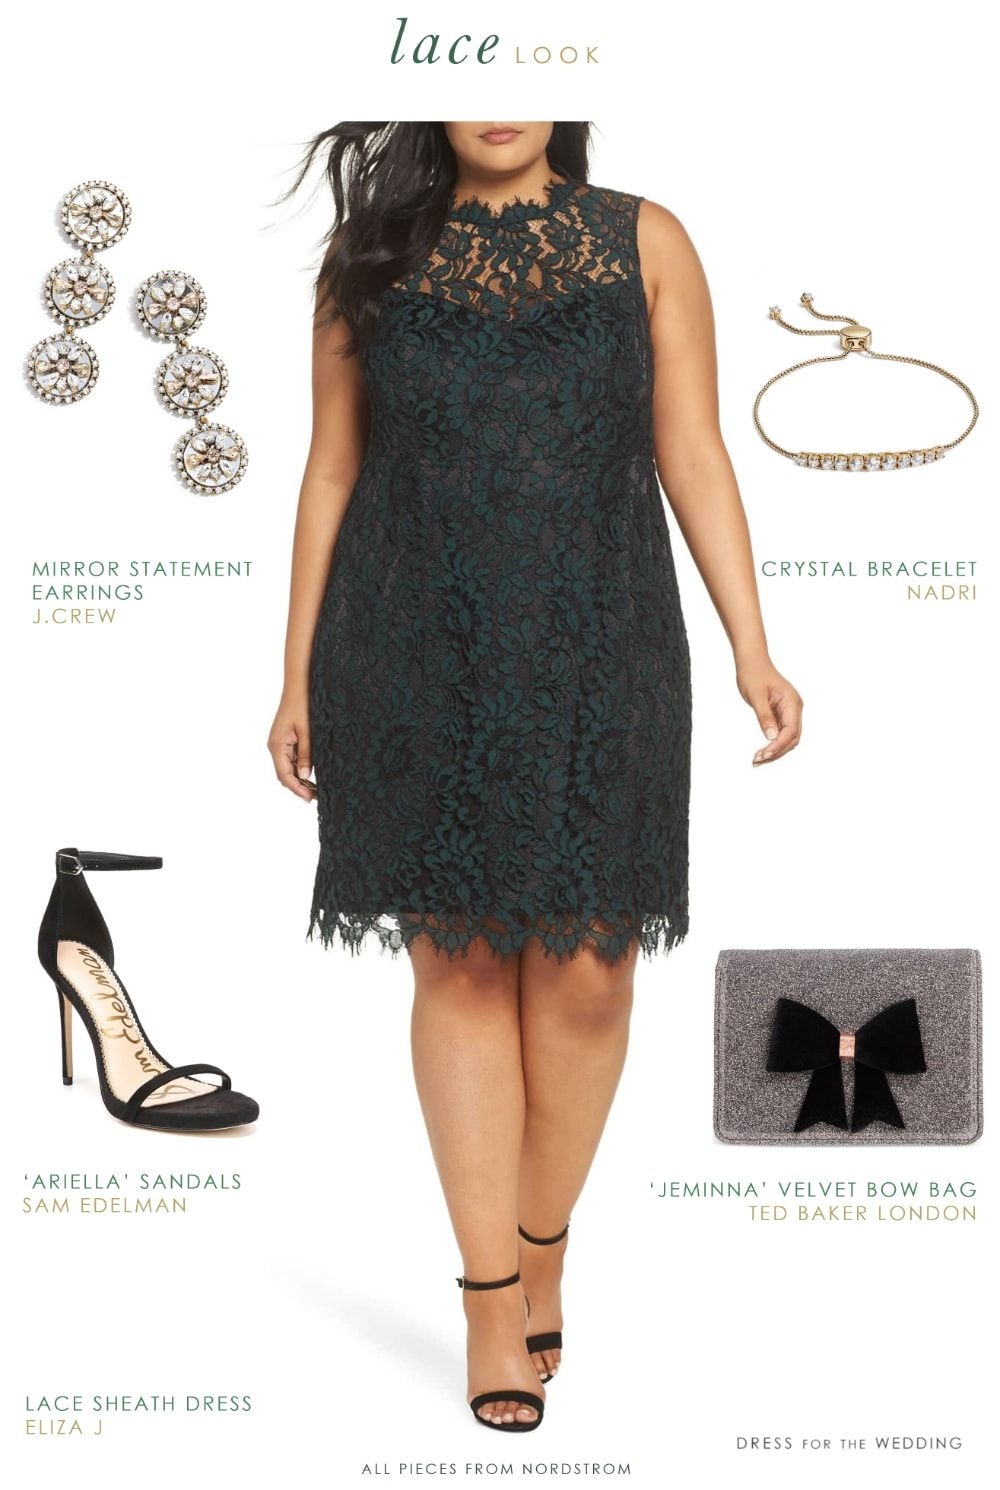 79cc96e776 Winter date or wedding guest outfit - Dark green lace dress with  accessories.  weddingguest  lacedress  plussize  dresses  outfits